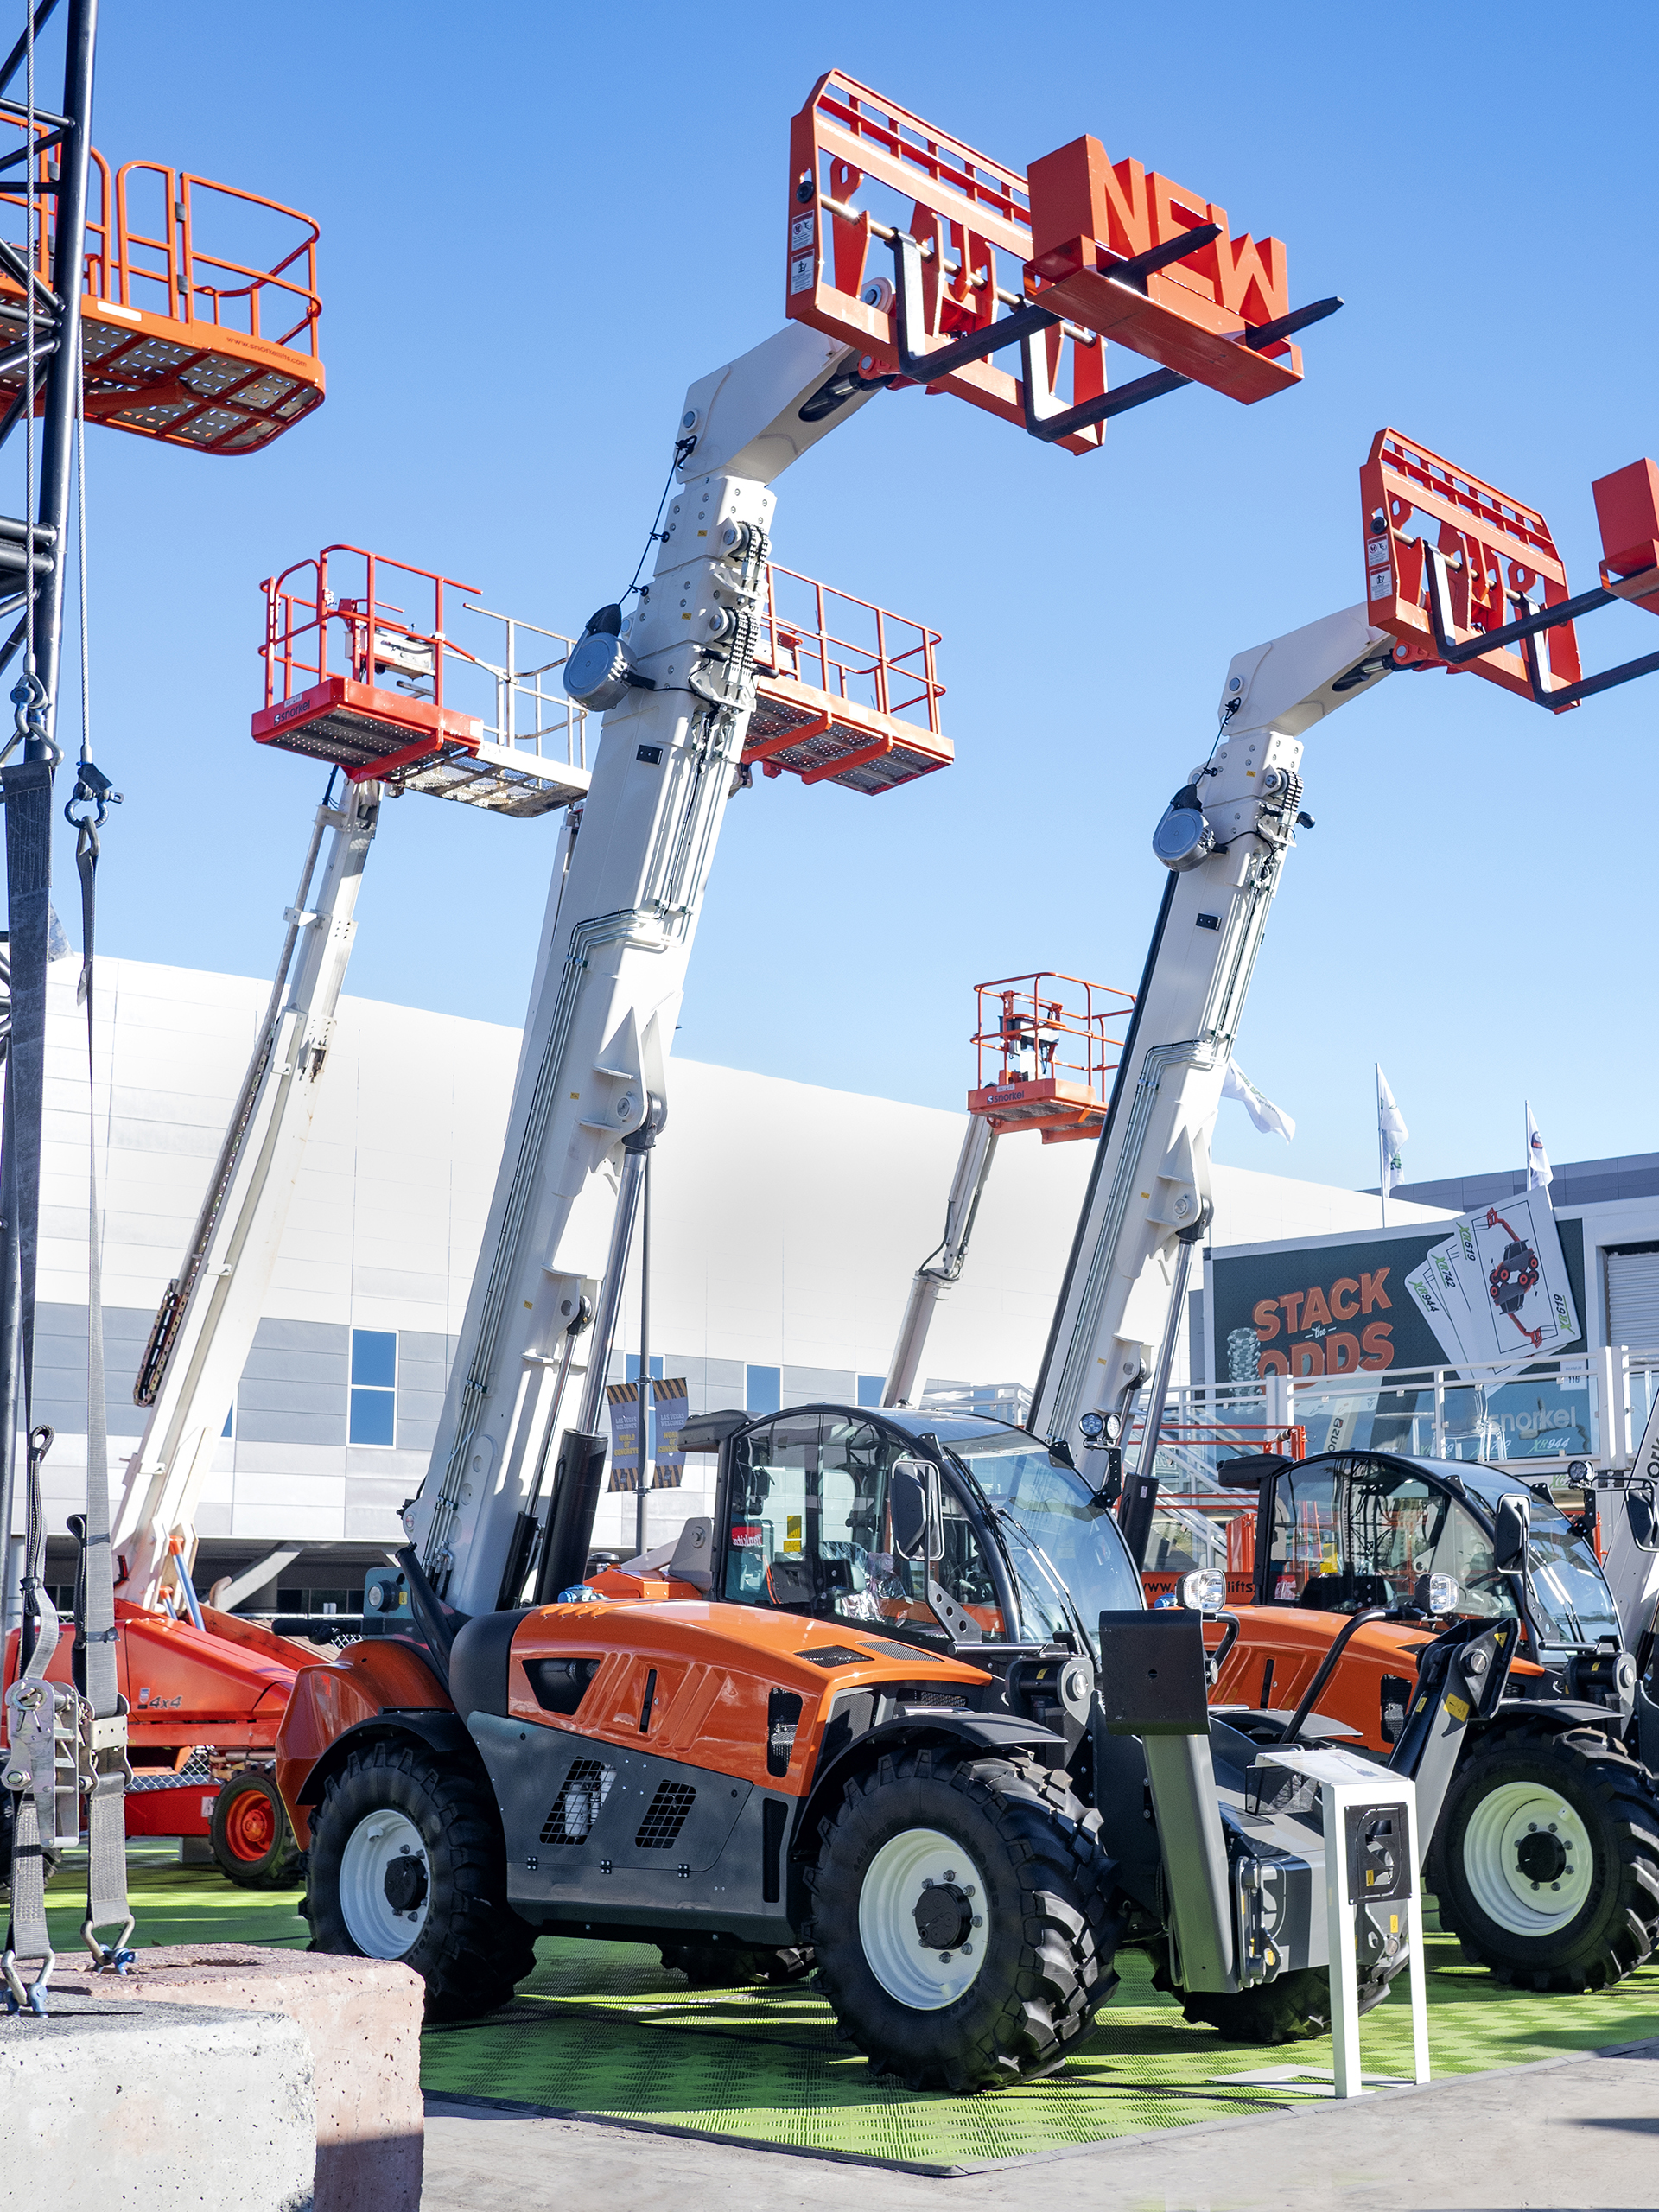 TWO NEW SNORKEL TELEHANDLERS INTRODUCED AT WORLD OF CONCRETE 2019